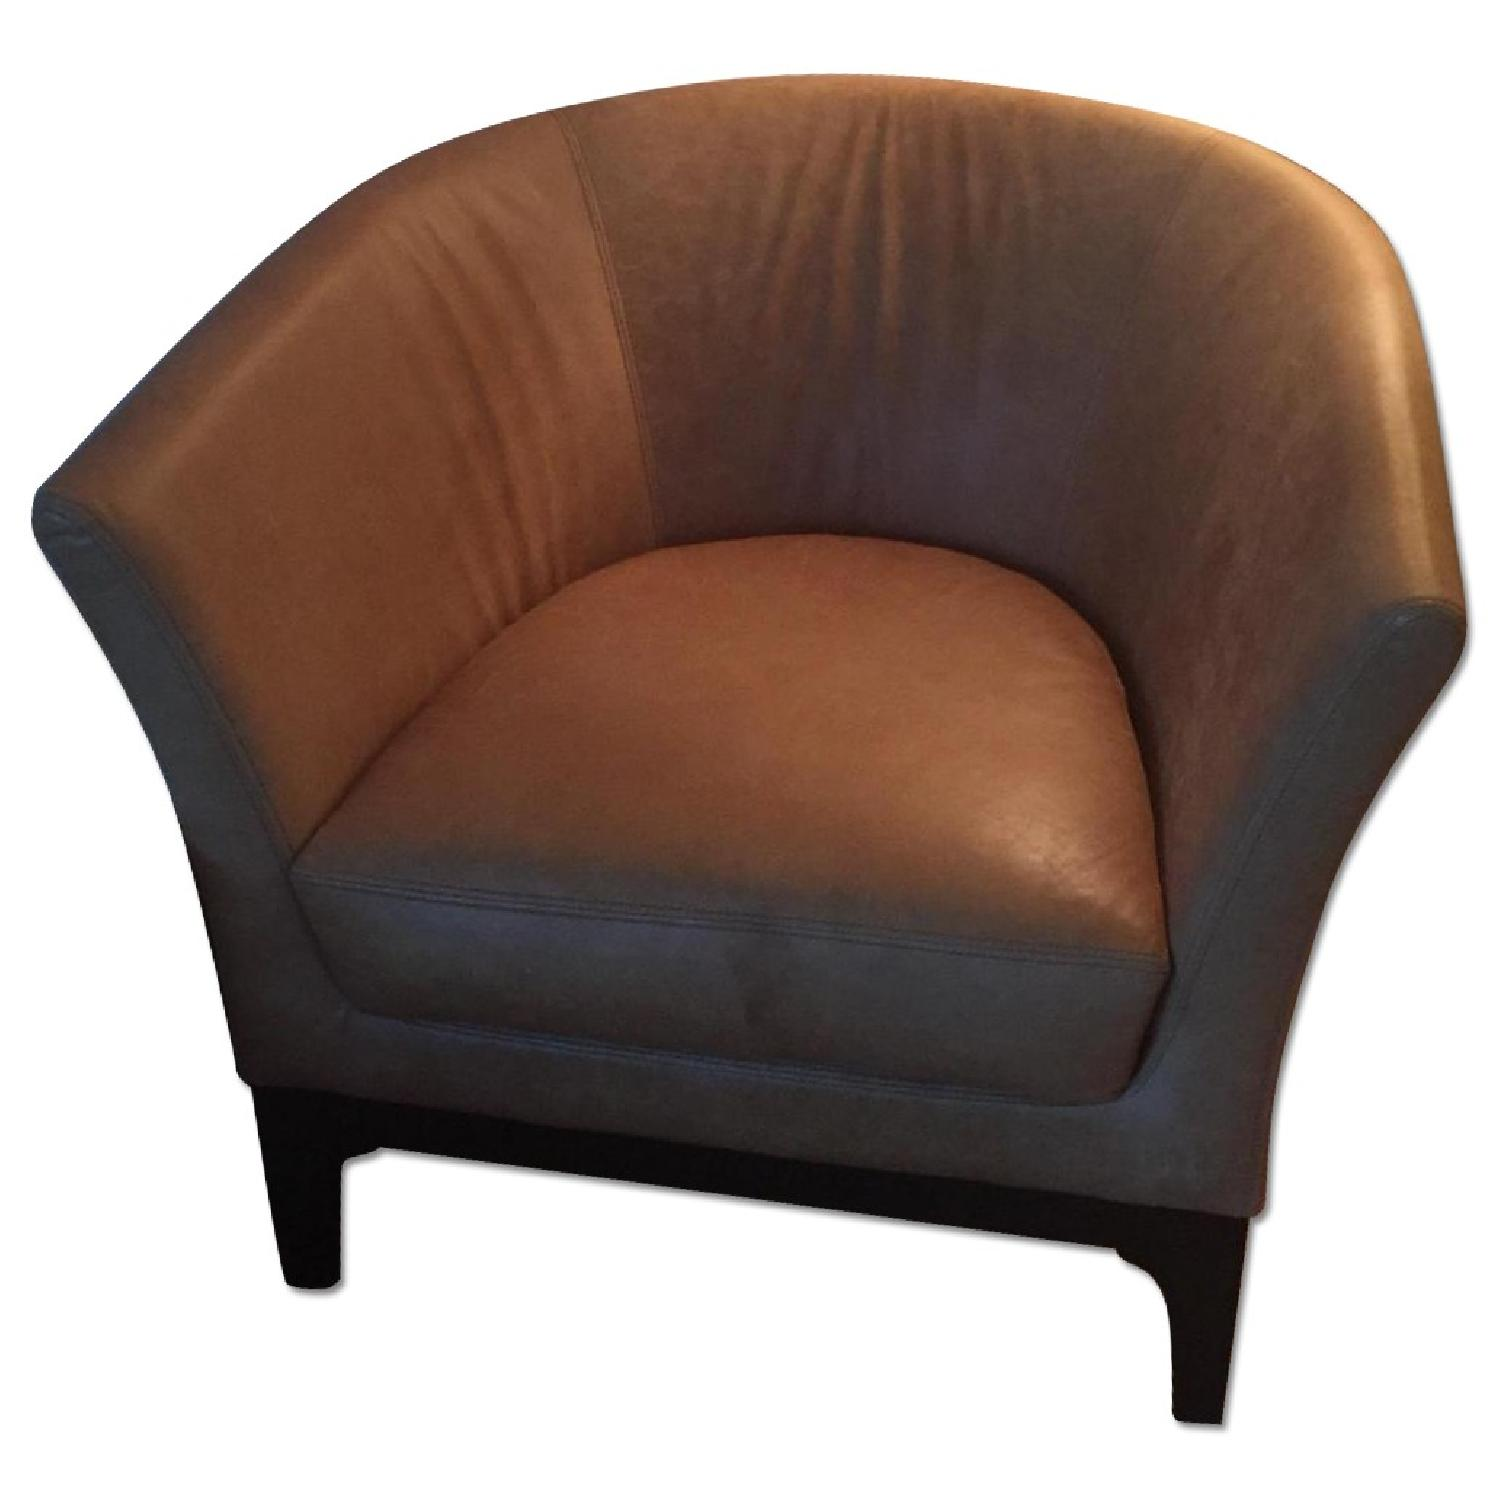 West Elm Leather Tulip Chair - image-0